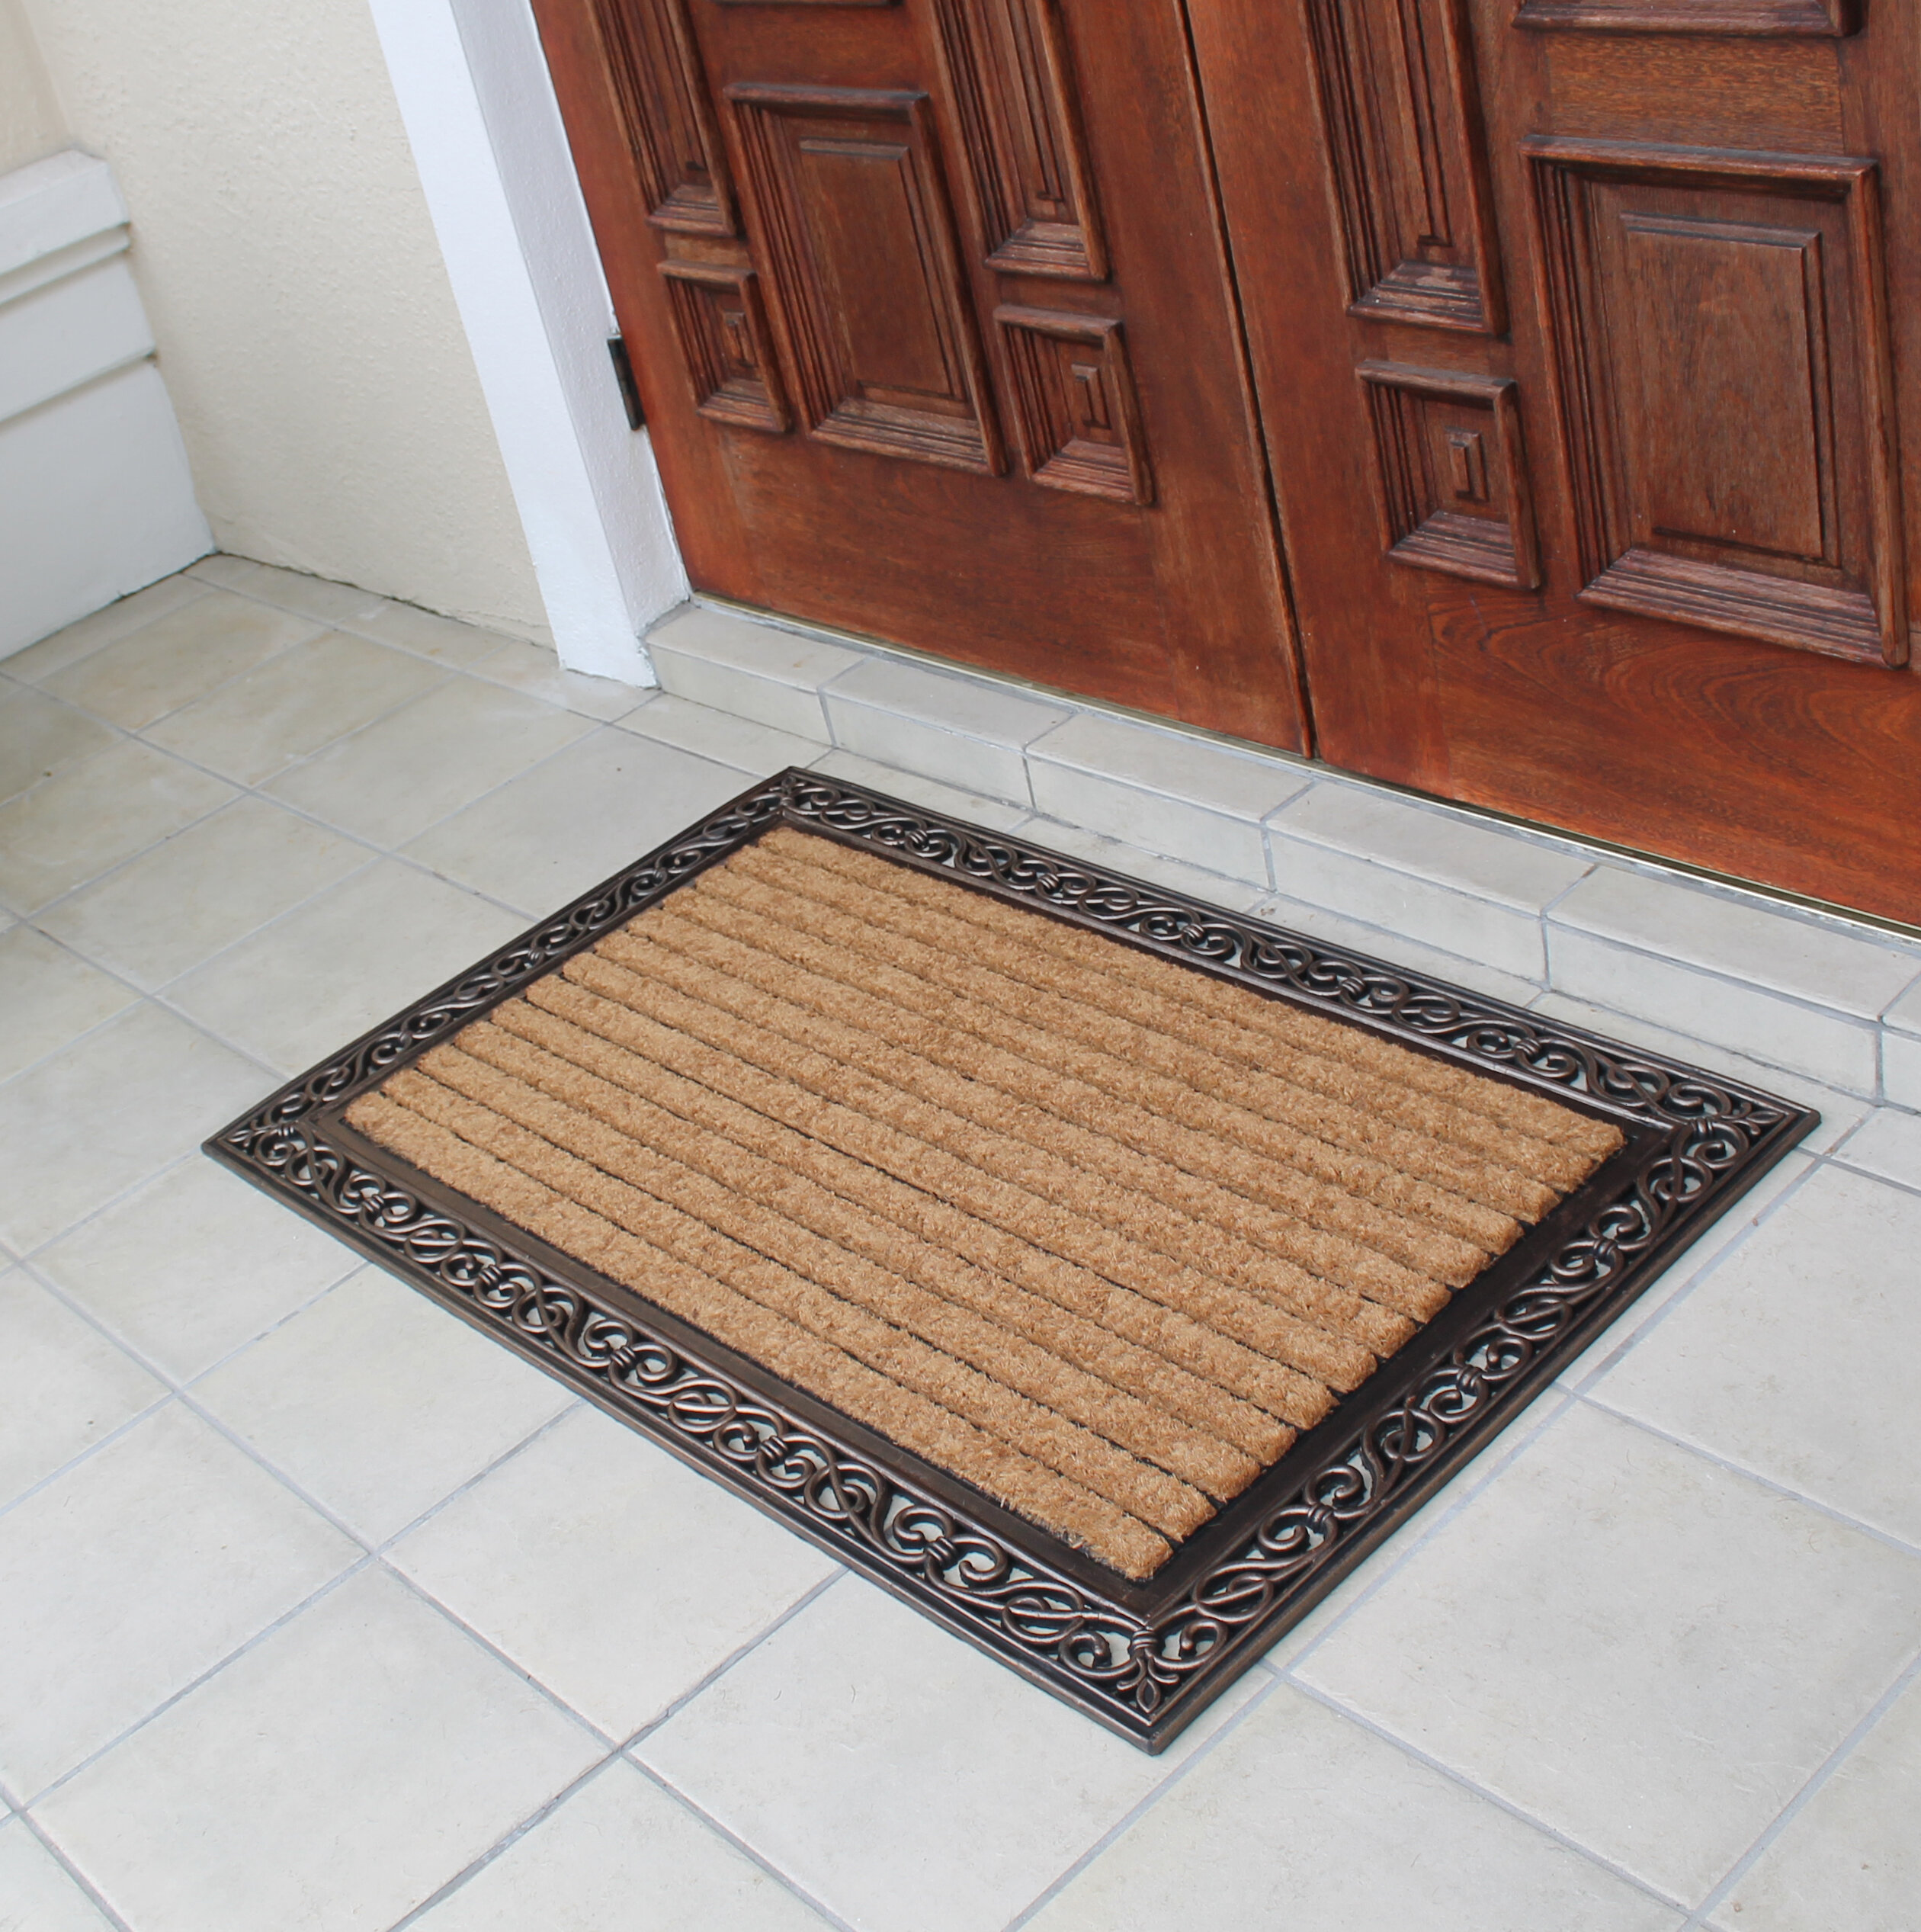 design doormat nz door info s naturalsuccess etsy monogrammed canada custom customs maker mat doormats